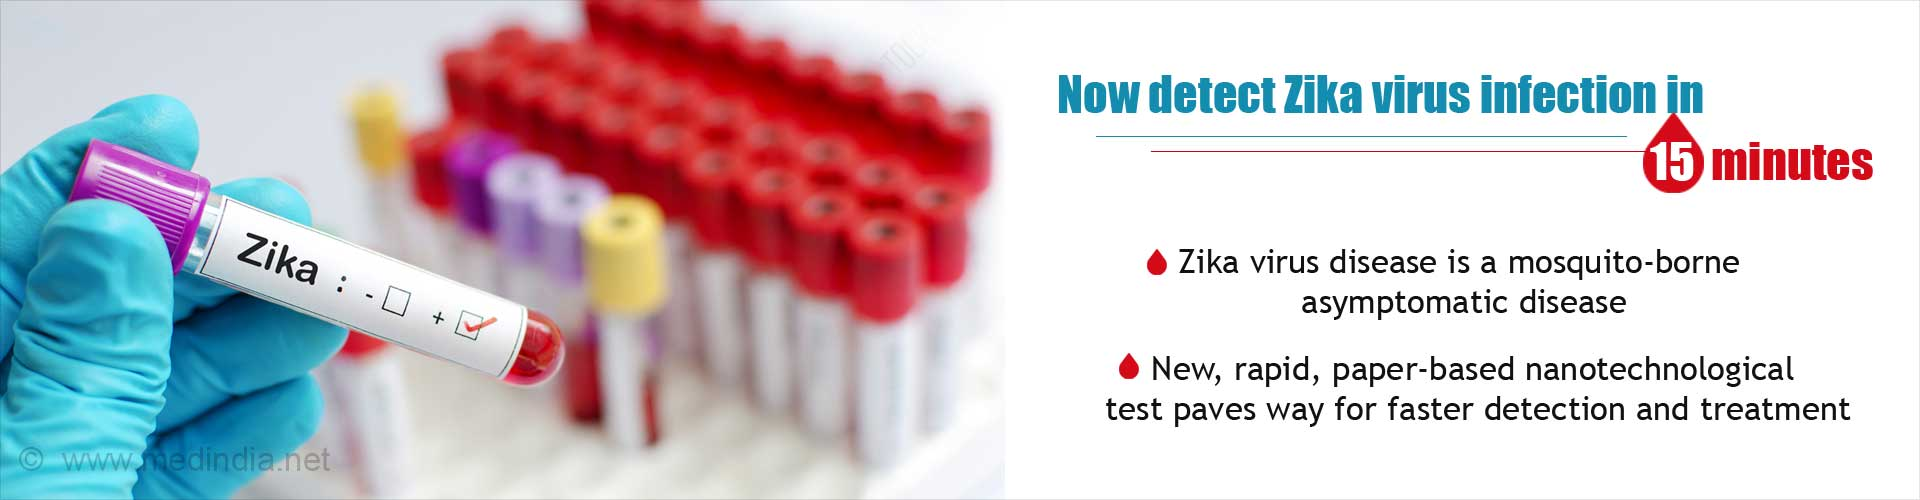 now detect zika virus infections in 15 minutes - zika virus disease is a mosquito-borne asymptomatic disease - new, rapid, paper-based nano technological test paves way for faster detection and treatment